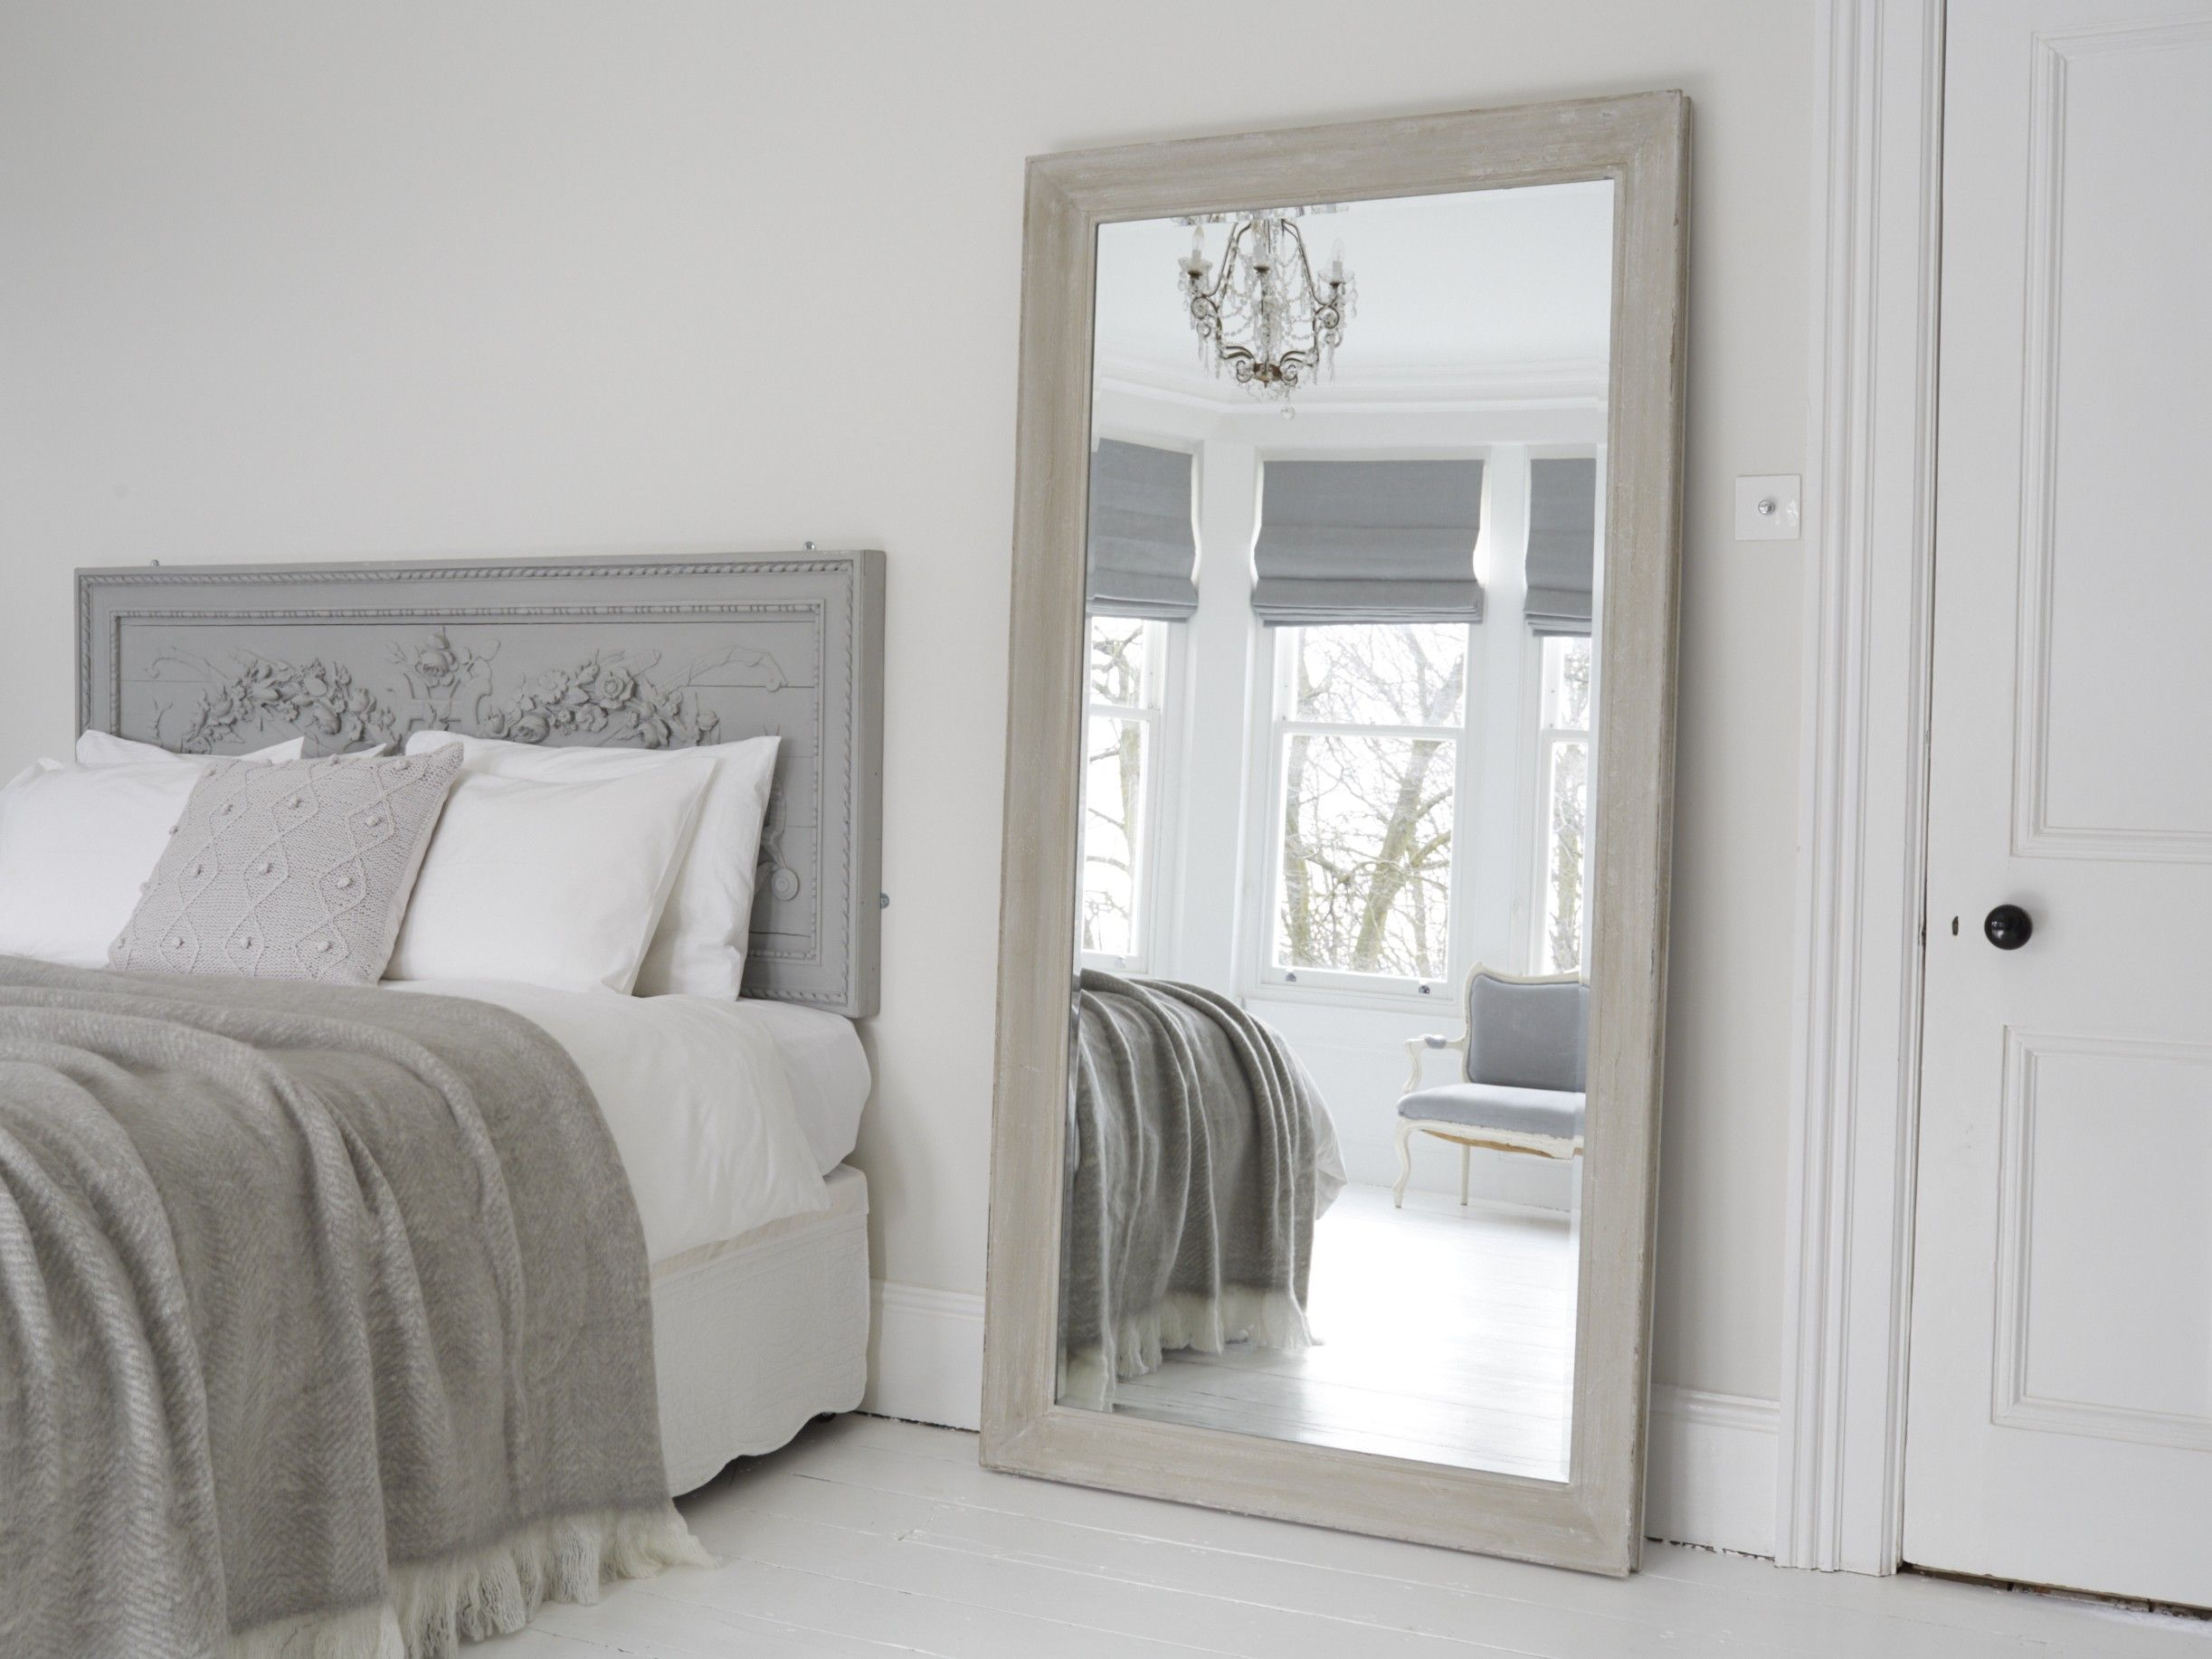 Firebrandcattery Creating Oversized Wall Mirrors: Aspen Mirror - Patina Grey In 2019